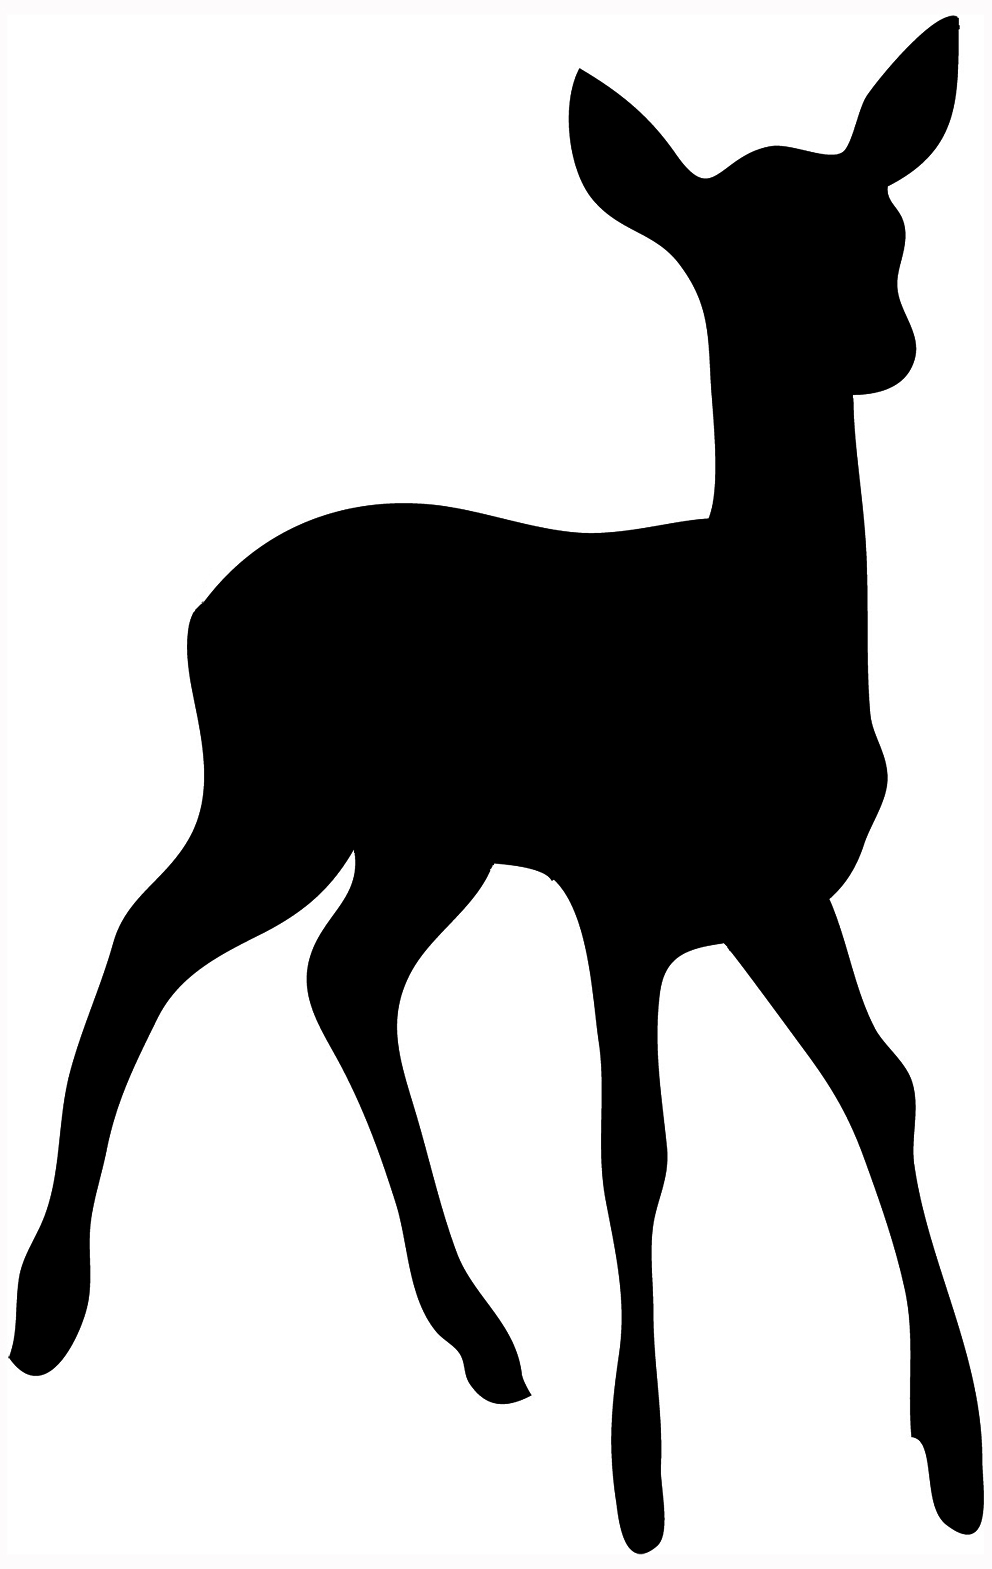 medium resolution of silhouette of stag silhouette of young deer